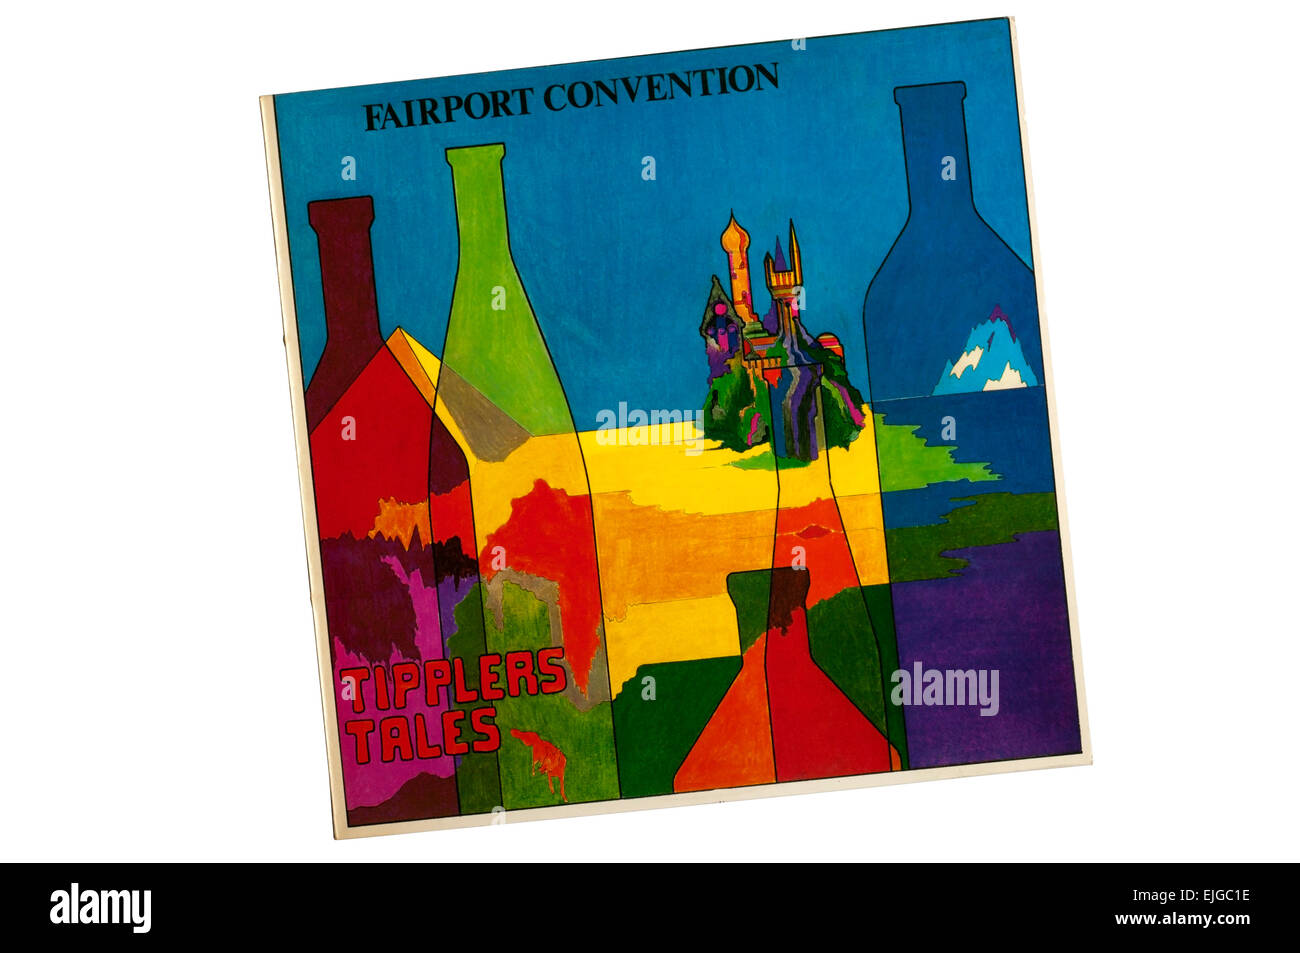 Tipplers Tales was a 1978 album by Fairport Convention recorded in only ten days. - Stock Image